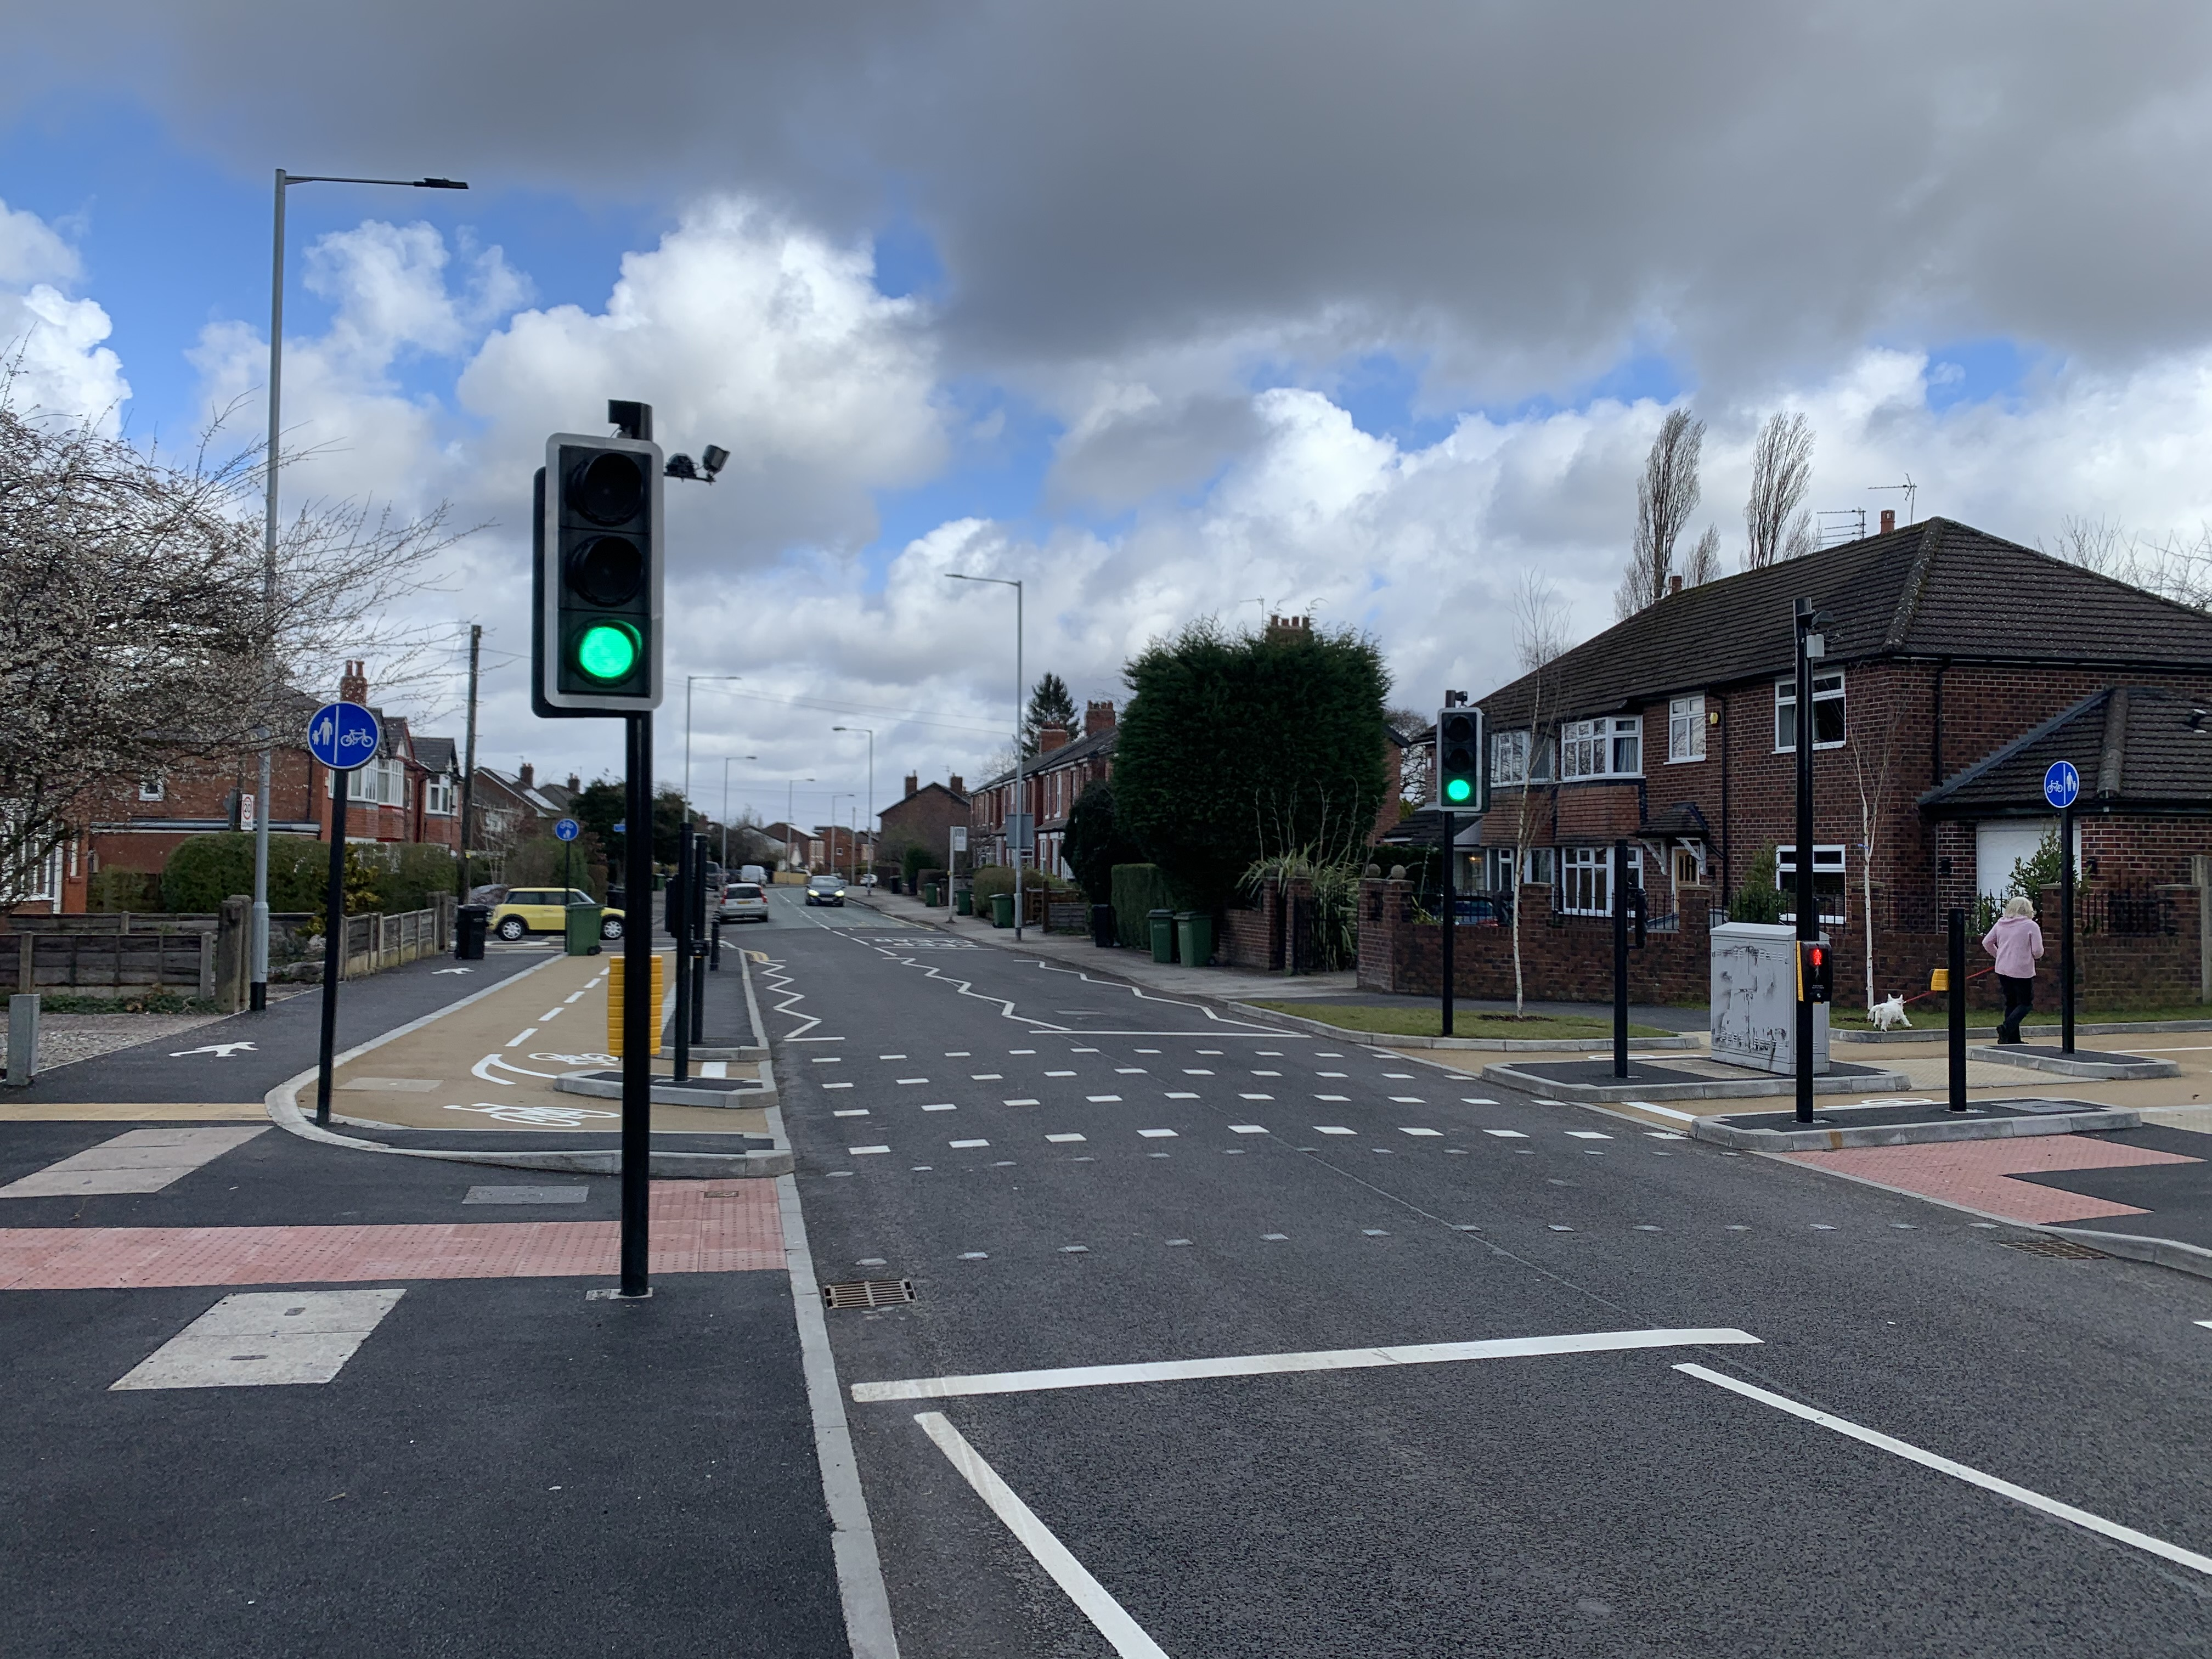 Image of Gillbent Road parallel signalised crossing in Stockport